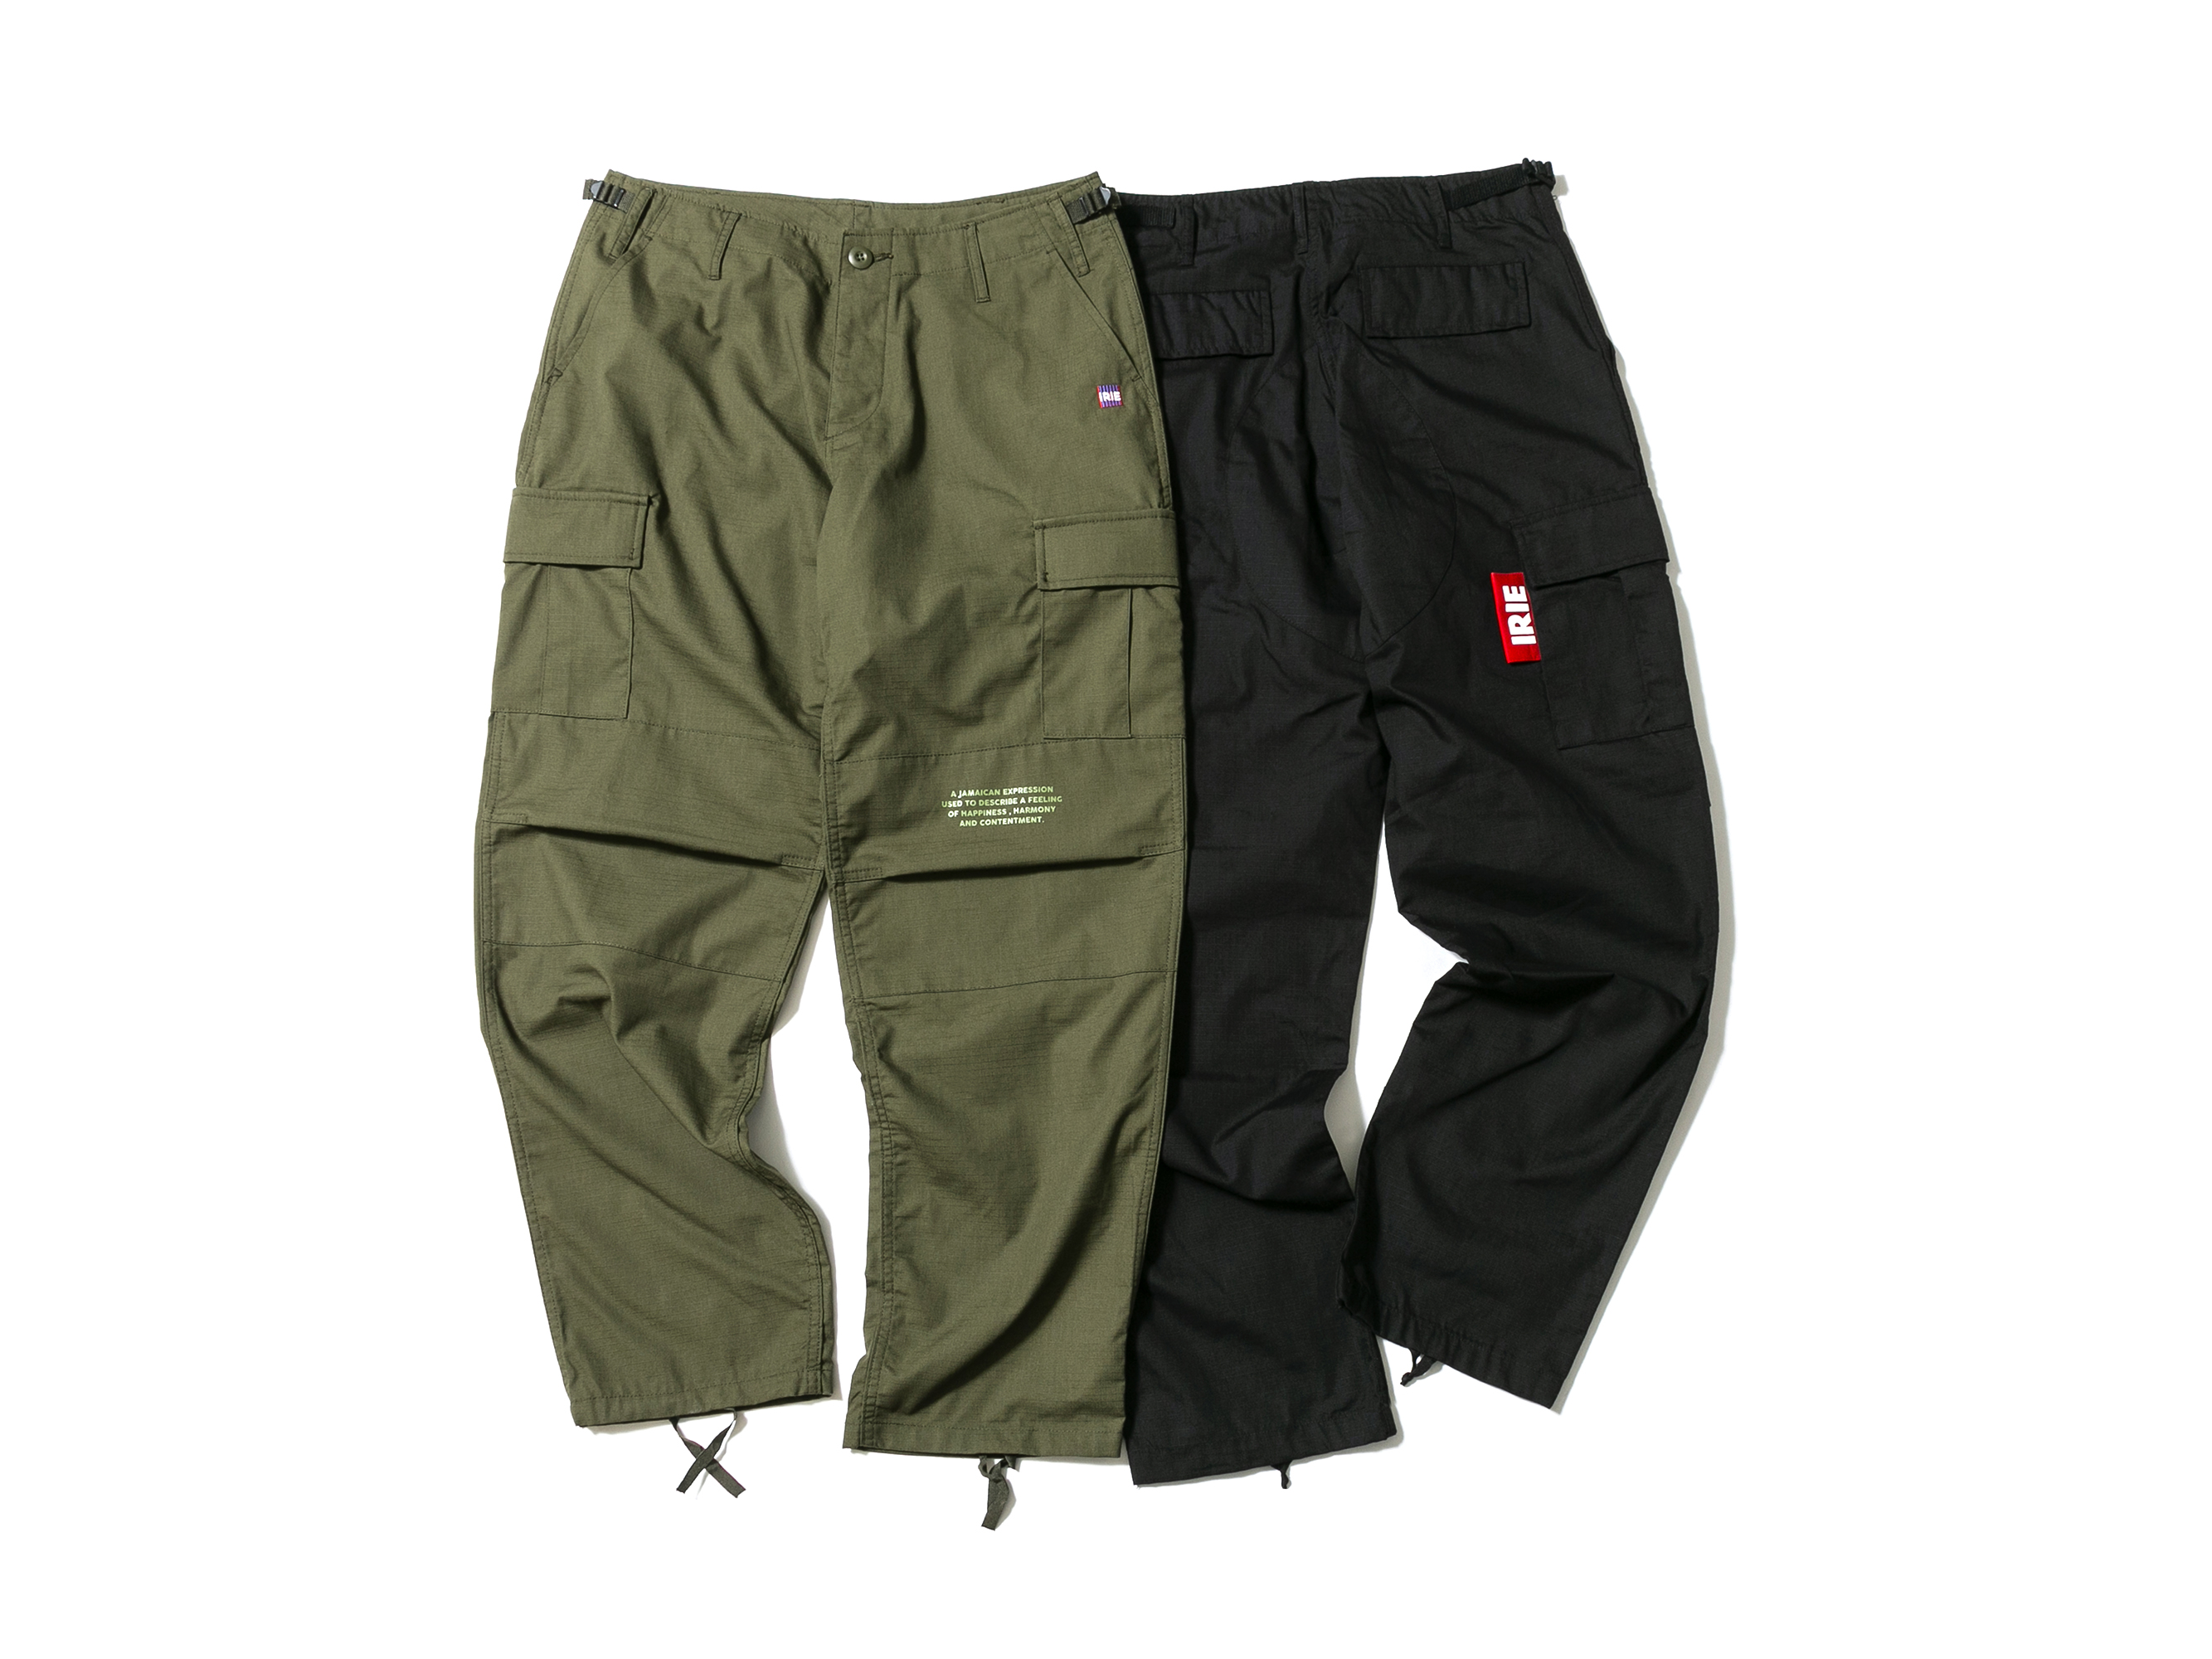 BIG TAG CARGO PANTS - IRIE by irielife